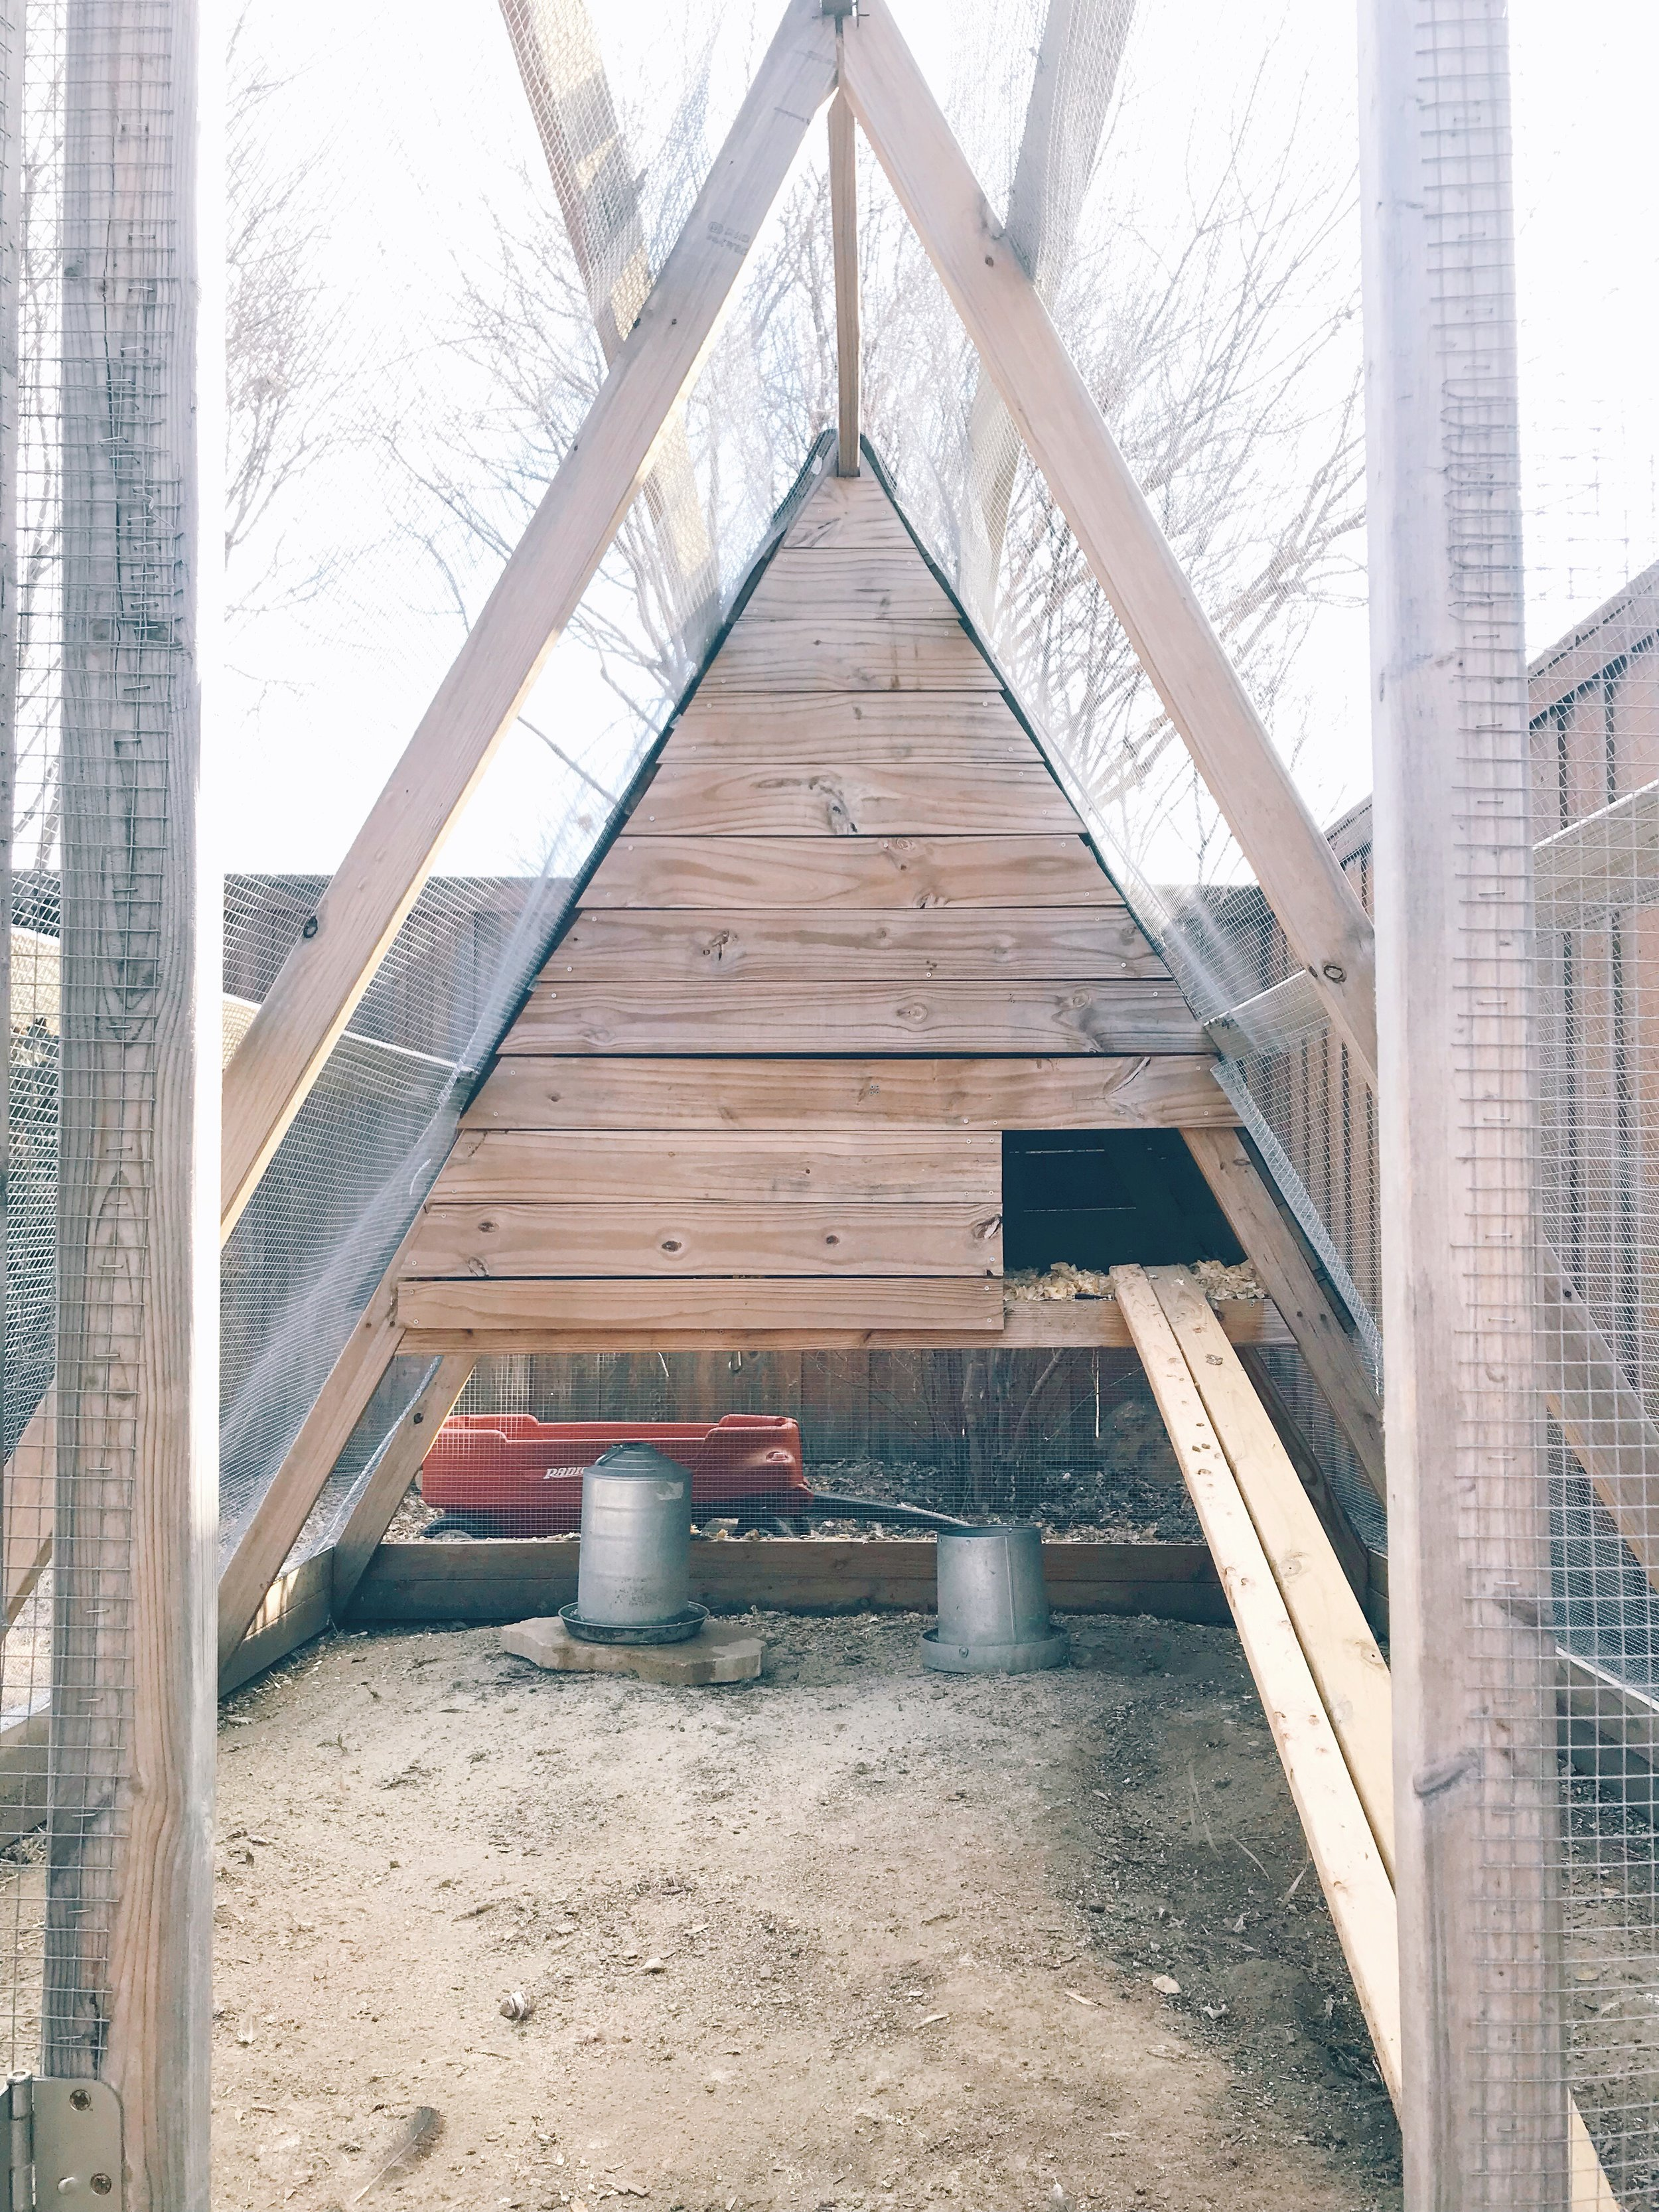 We were able to keep the feeder and waterer under the little hen house part of the coop, keeping it from rain.